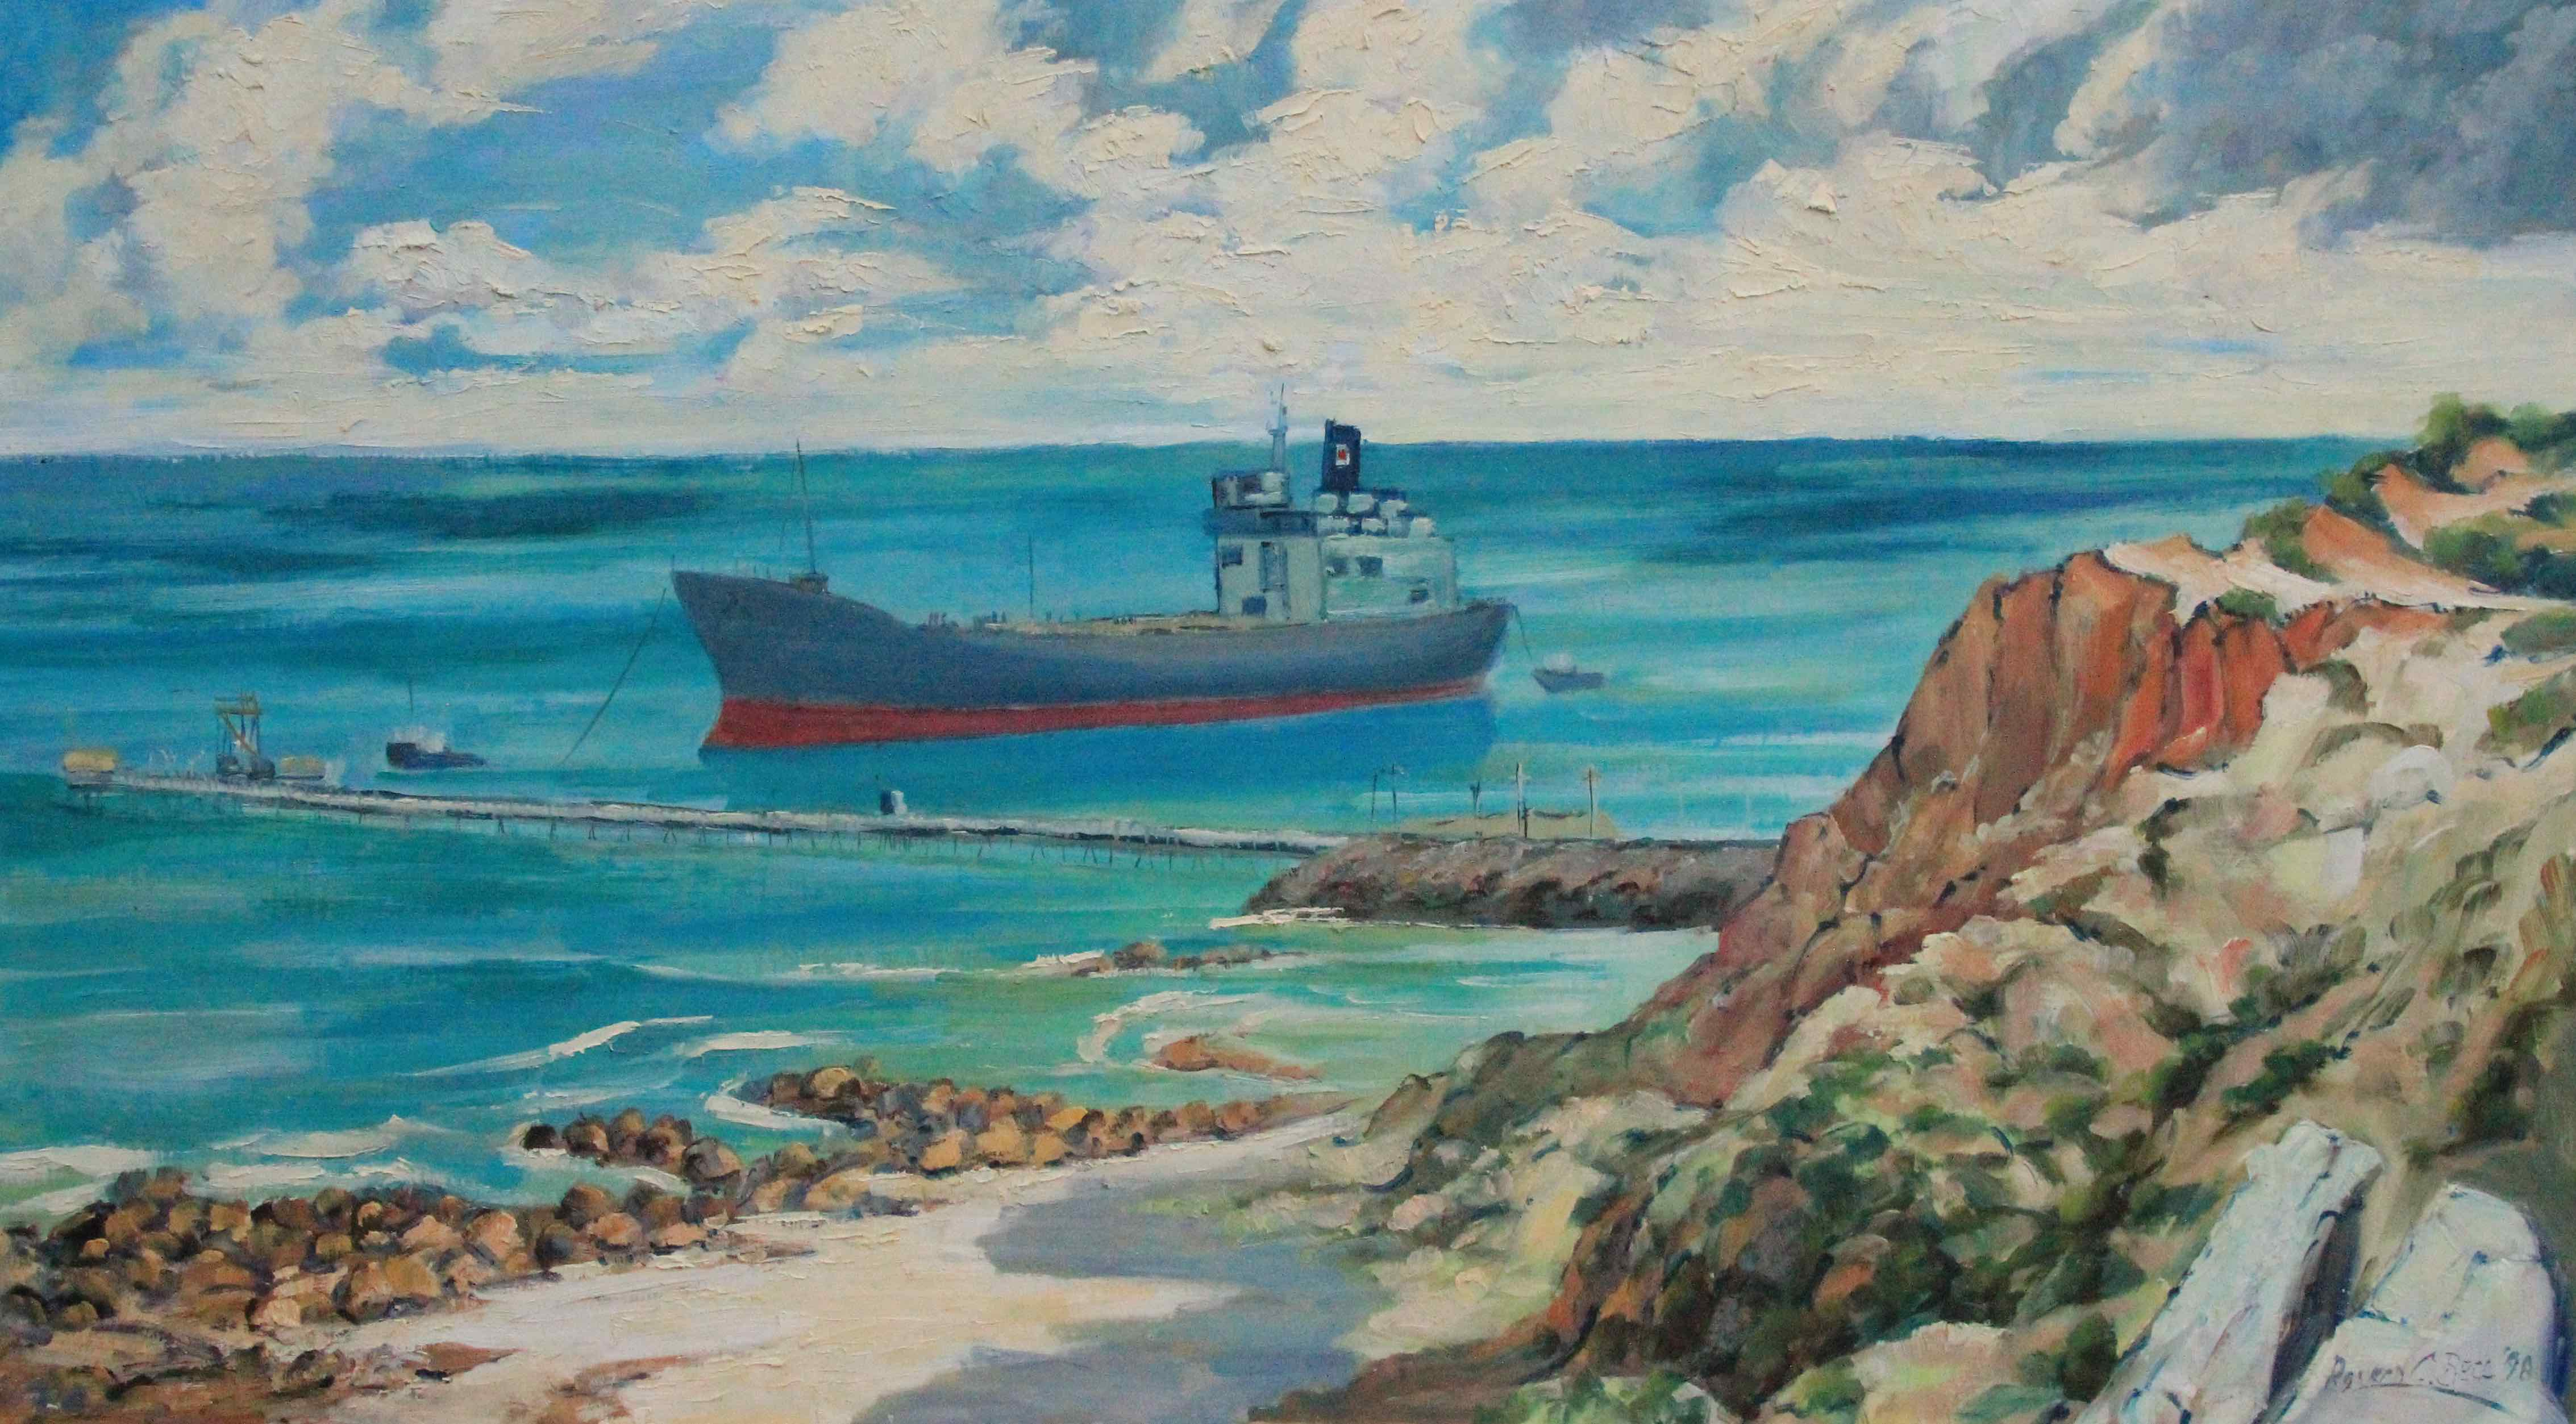 Boat at sea by Ronald C Bell